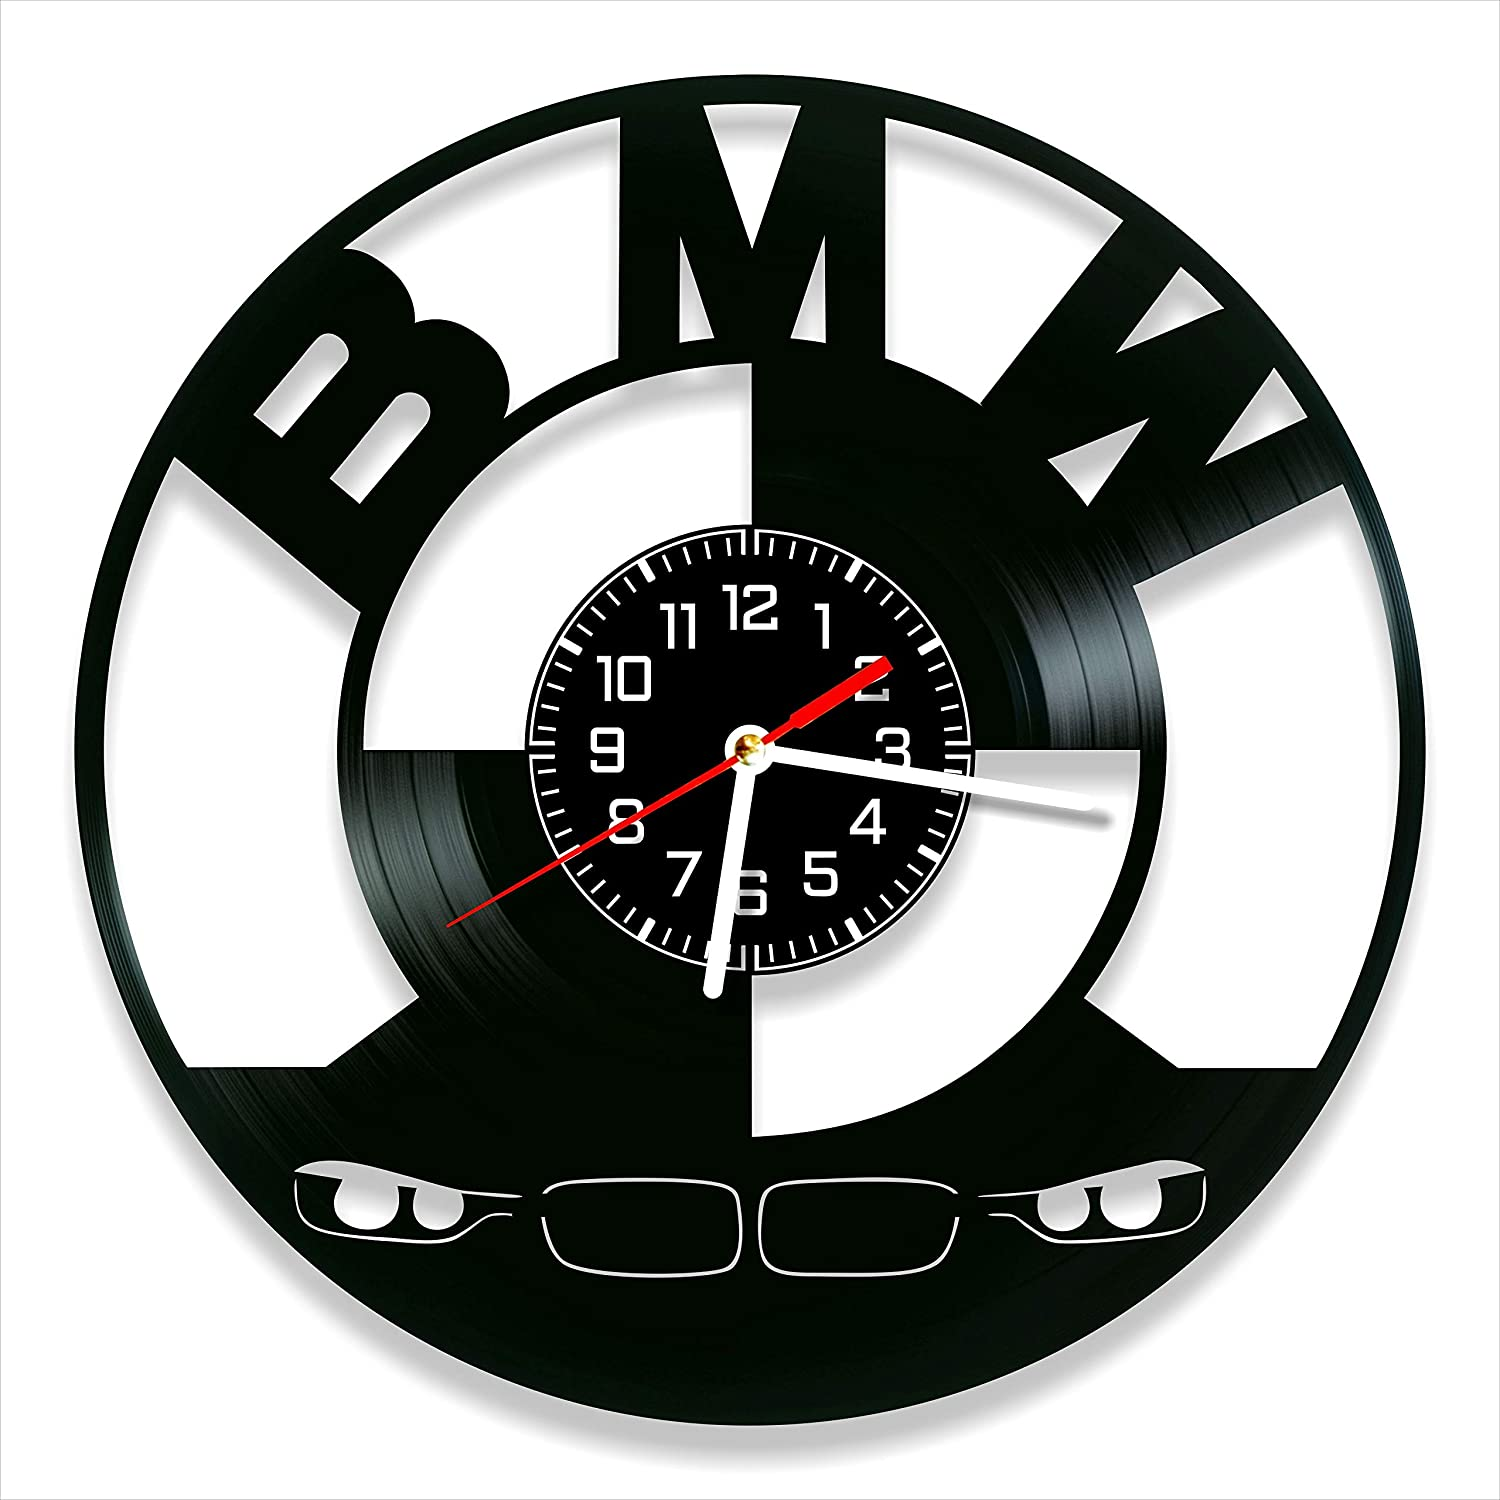 BMW Vinyl Clock, Club Wall Clock 12 inch (30 cm), Original Gifts for Fans BMW, The Best Home Decorations, Unique Art Decor, Original Idea for Home Decor